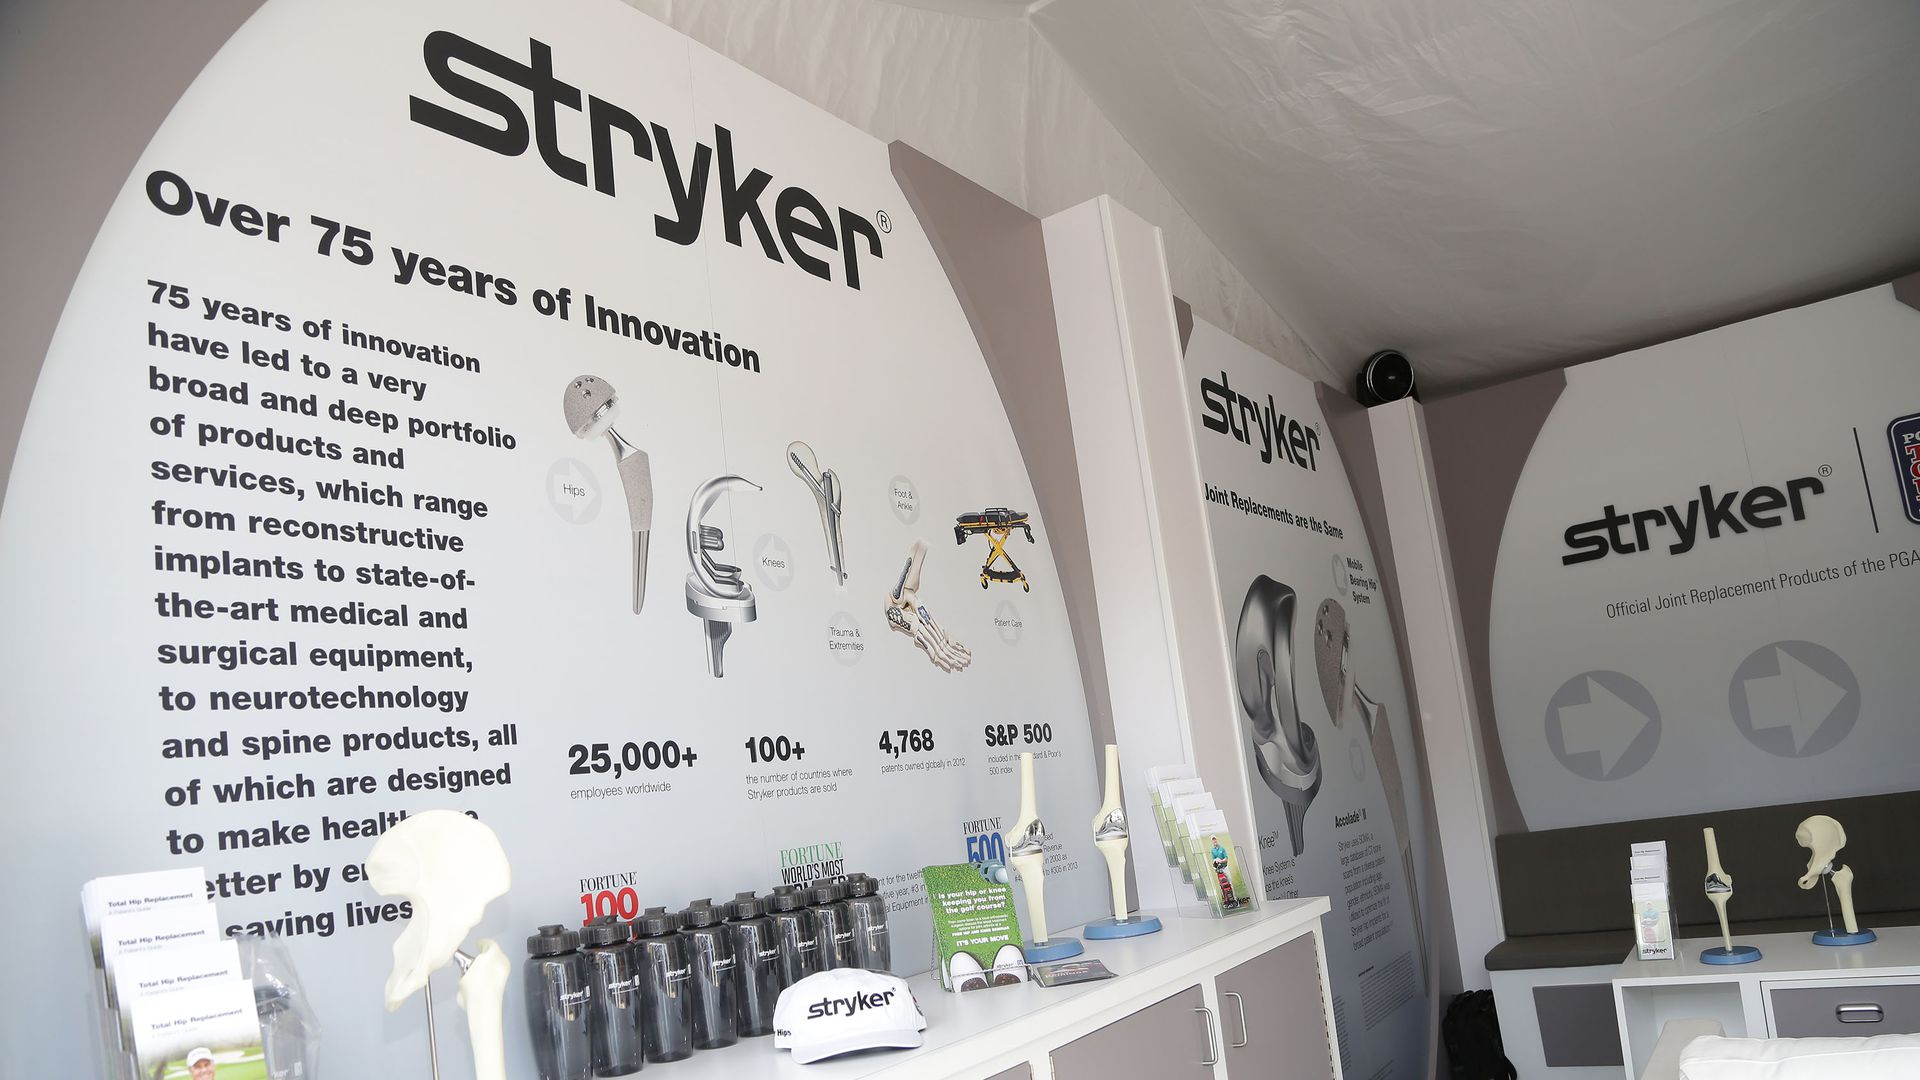 A Stryker exhibit of joint replacement implants.